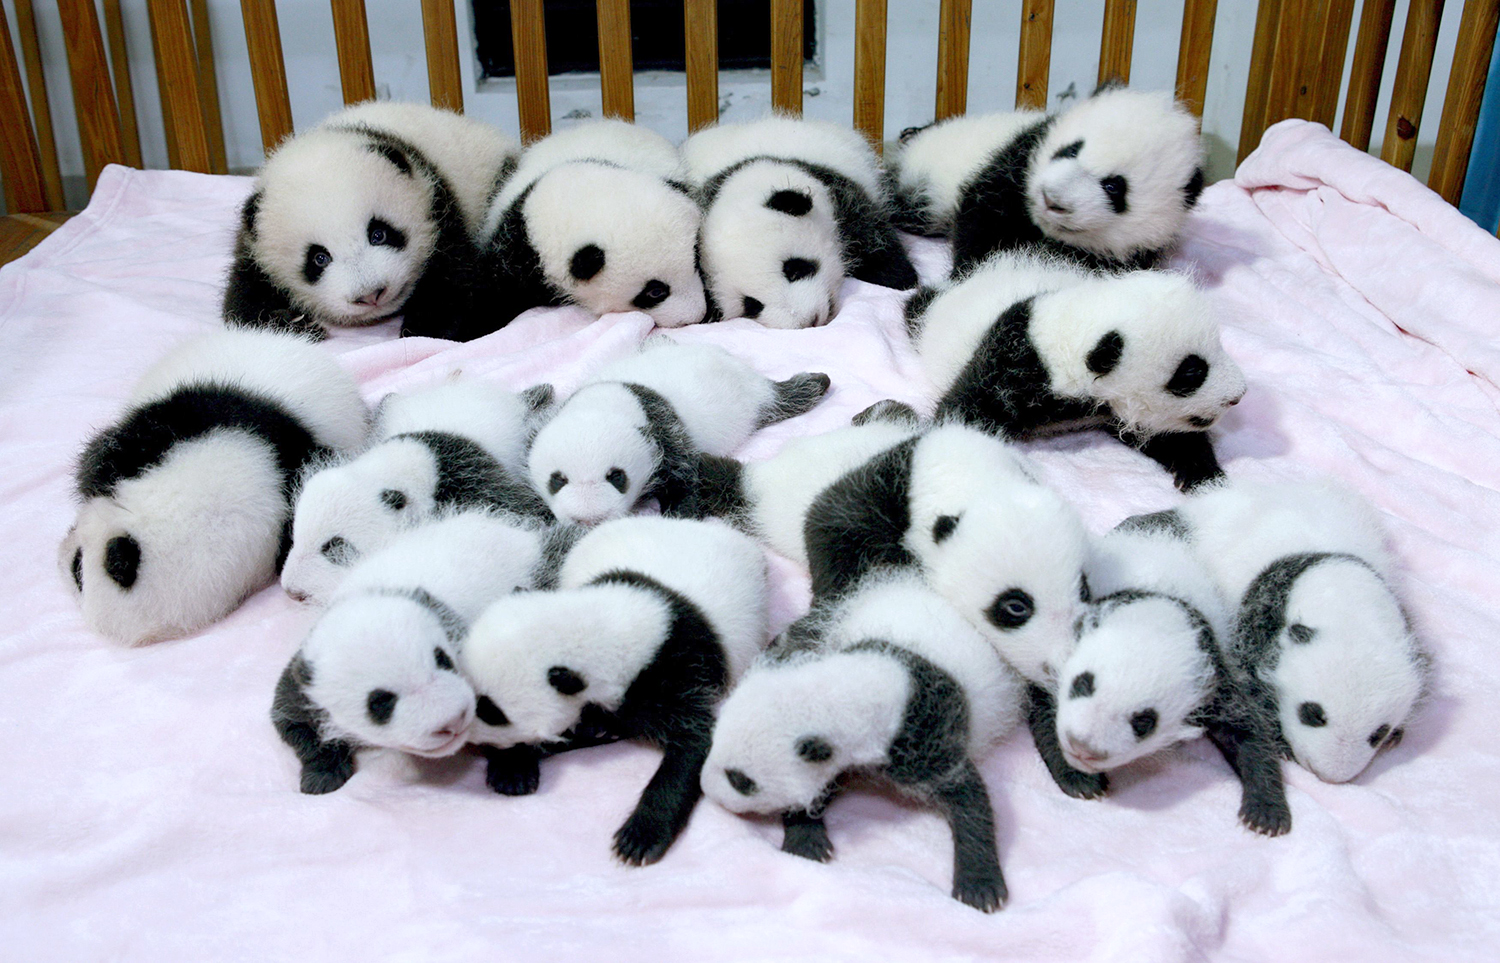 Giant panda cubs lie in a crib at Chengdu Research Base of Giant Panda Breeding in Chengdu, Sichuan province, September 23, 2013. Fourteen new joiners to the 128-giant-panda-family at the base were shown to the public on Monday, according to local media. REUTERS/China Daily (CHINA - Tags: SOCIETY ANIMALS) CHINA OUT. NO COMMERCIAL OR EDITORIAL SALES IN CHINA